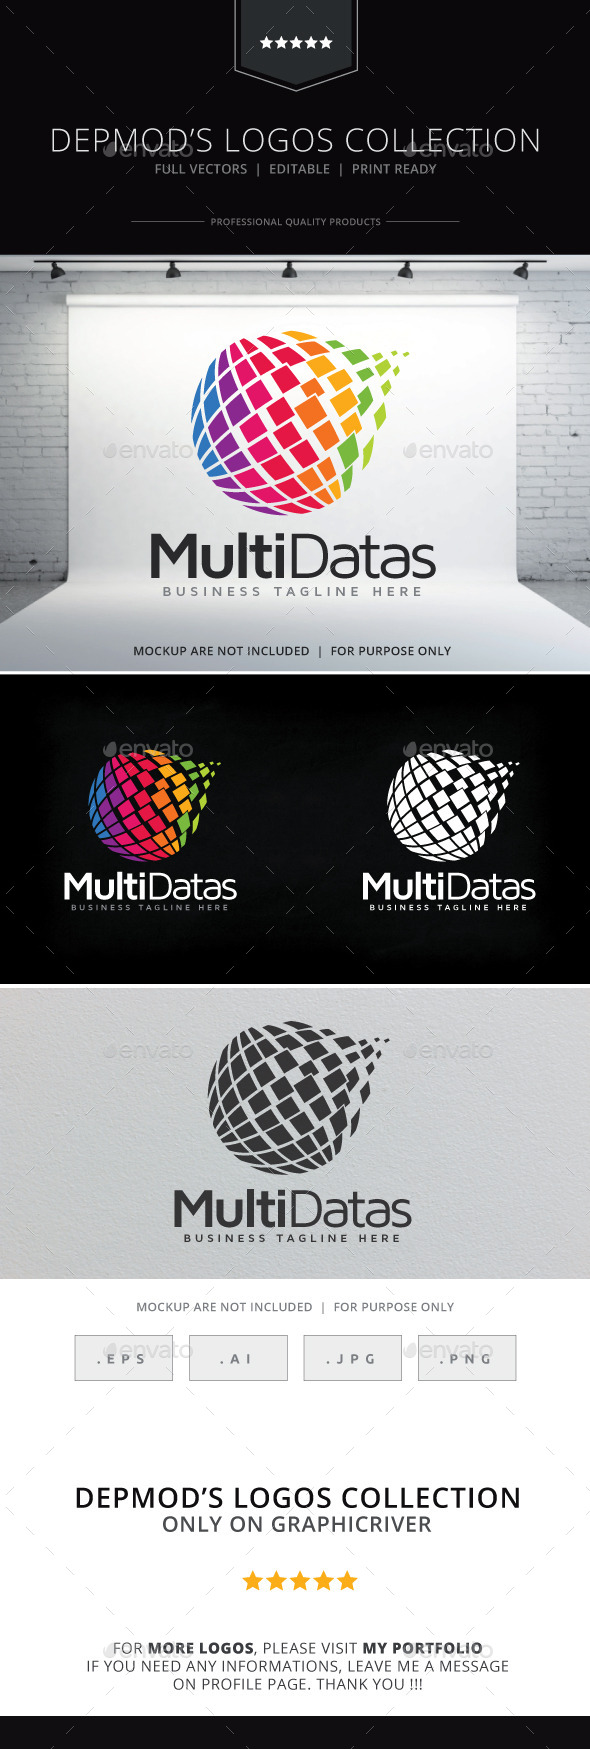 GraphicRiver Multi Datas Logo 9264593